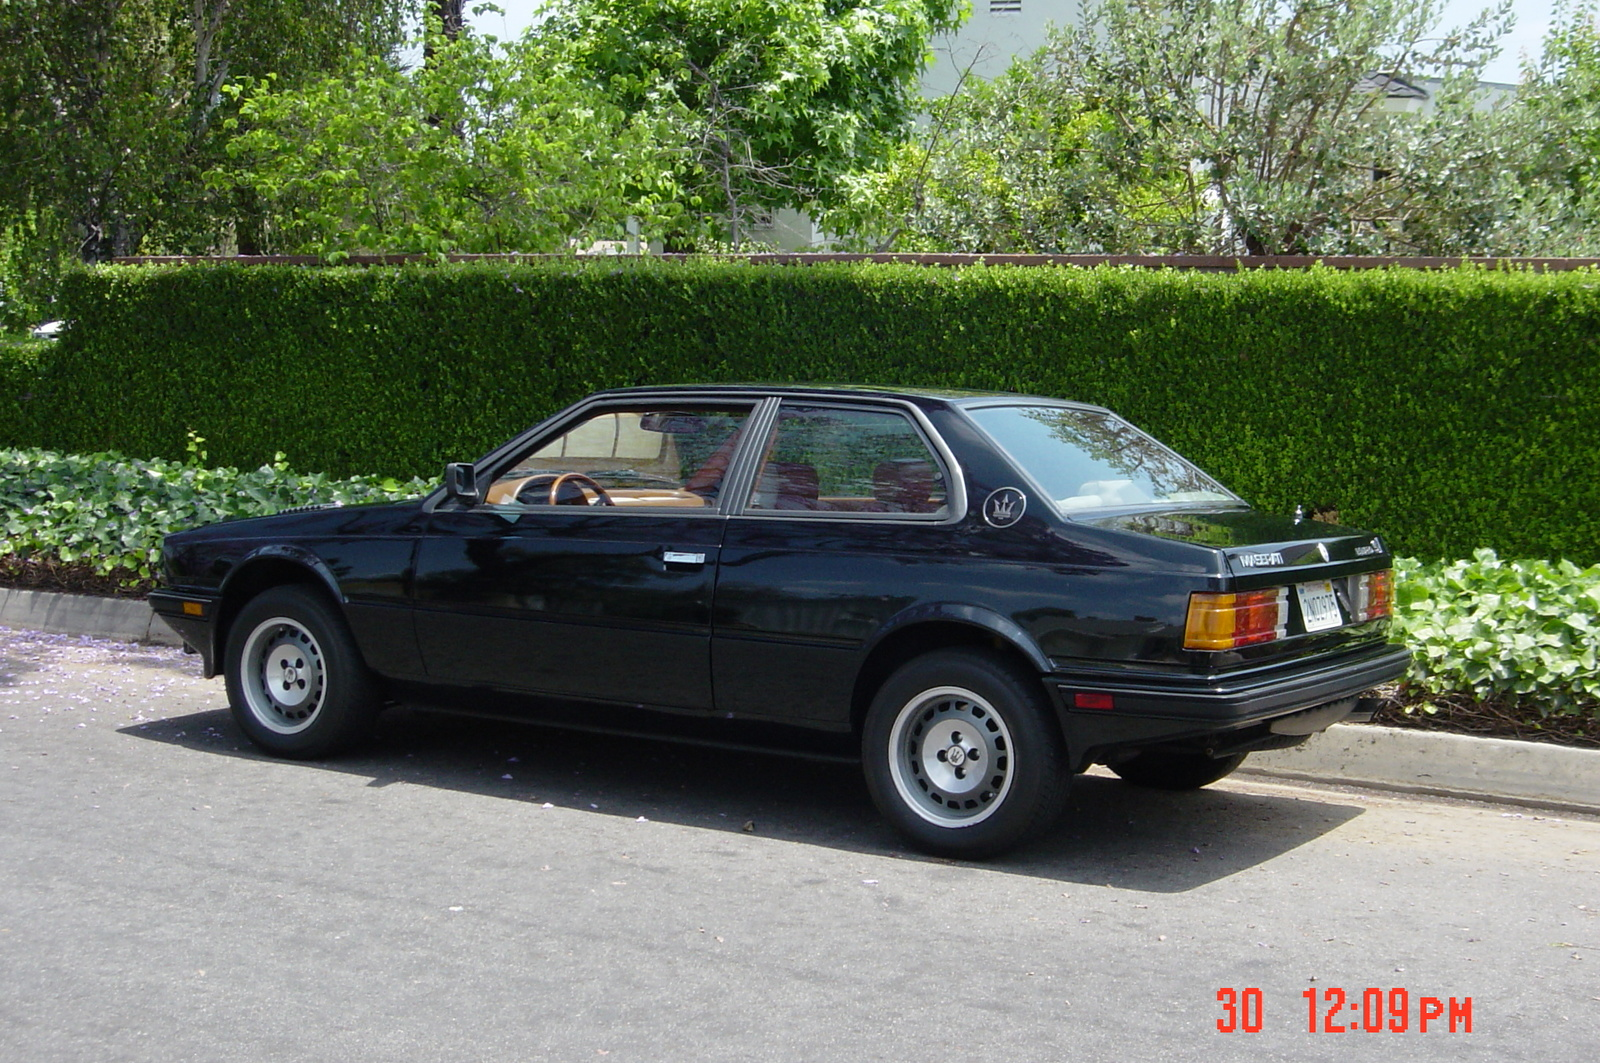 1985 Maserati Biturbo 2.5 Spider related infomation,specifications